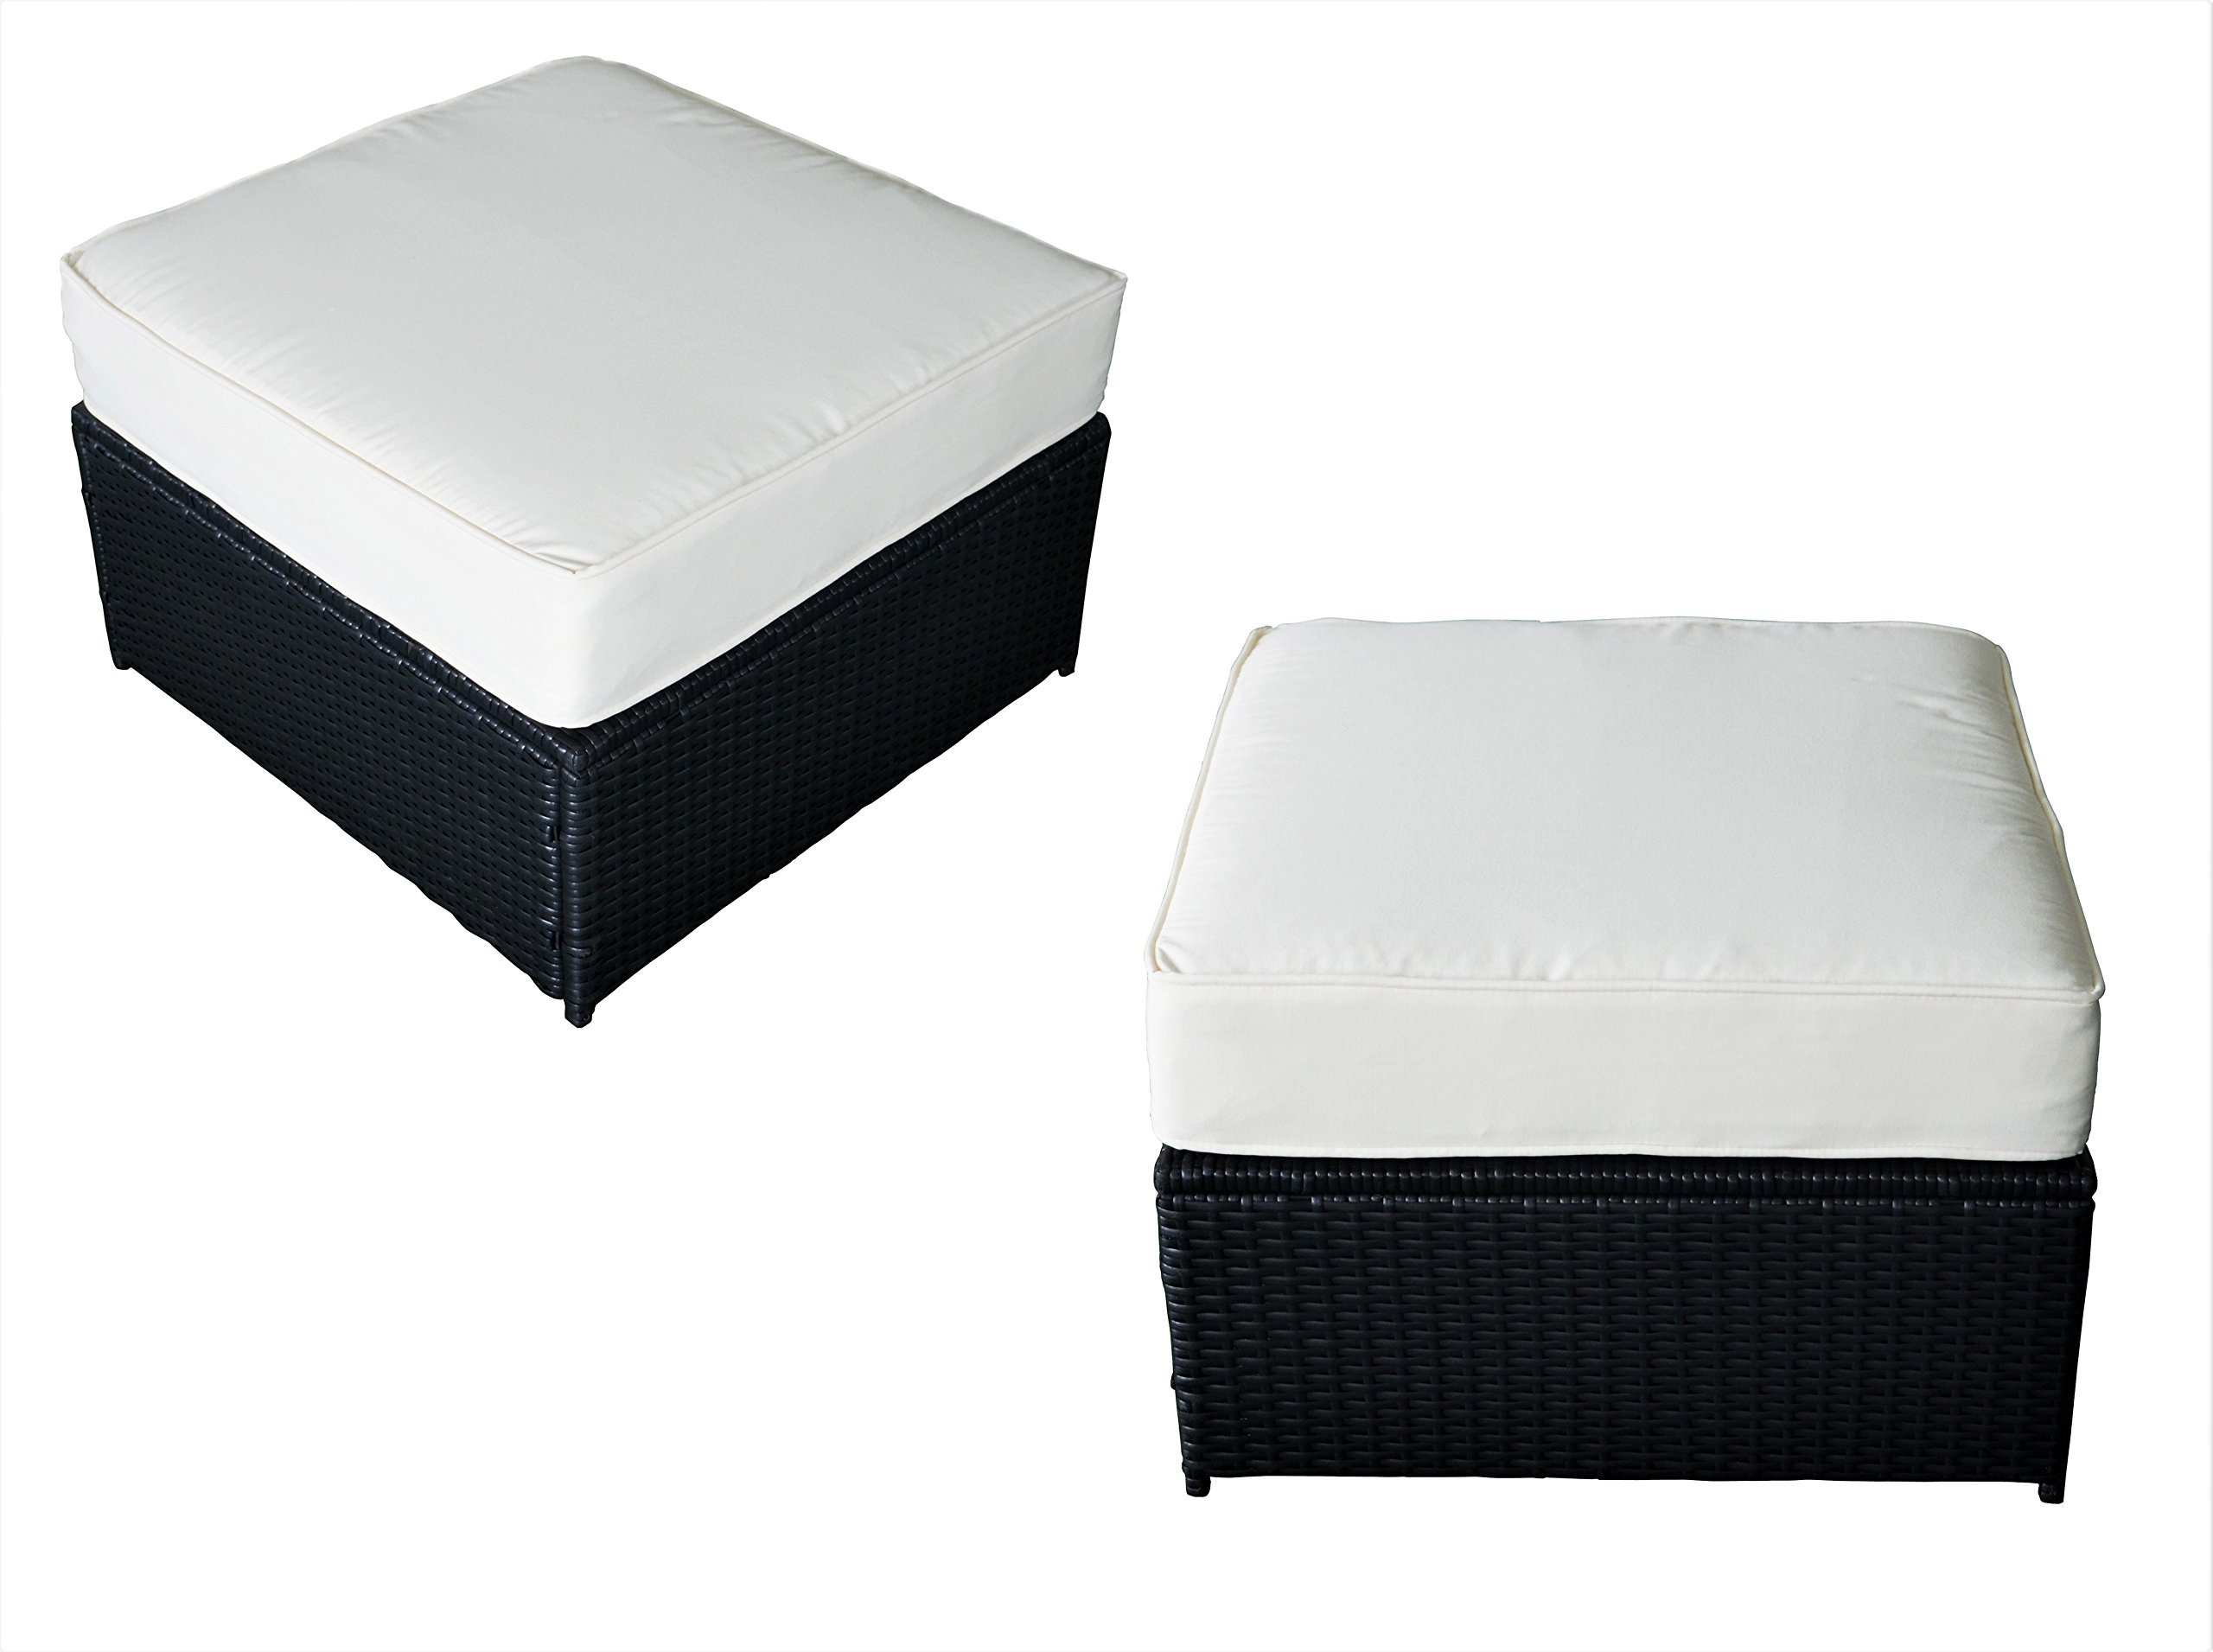 MCombo Outdoor Patio Wicker Rattan Square Ottoman Seat Sofa Chair with Cushion Set of 2 Black 6085